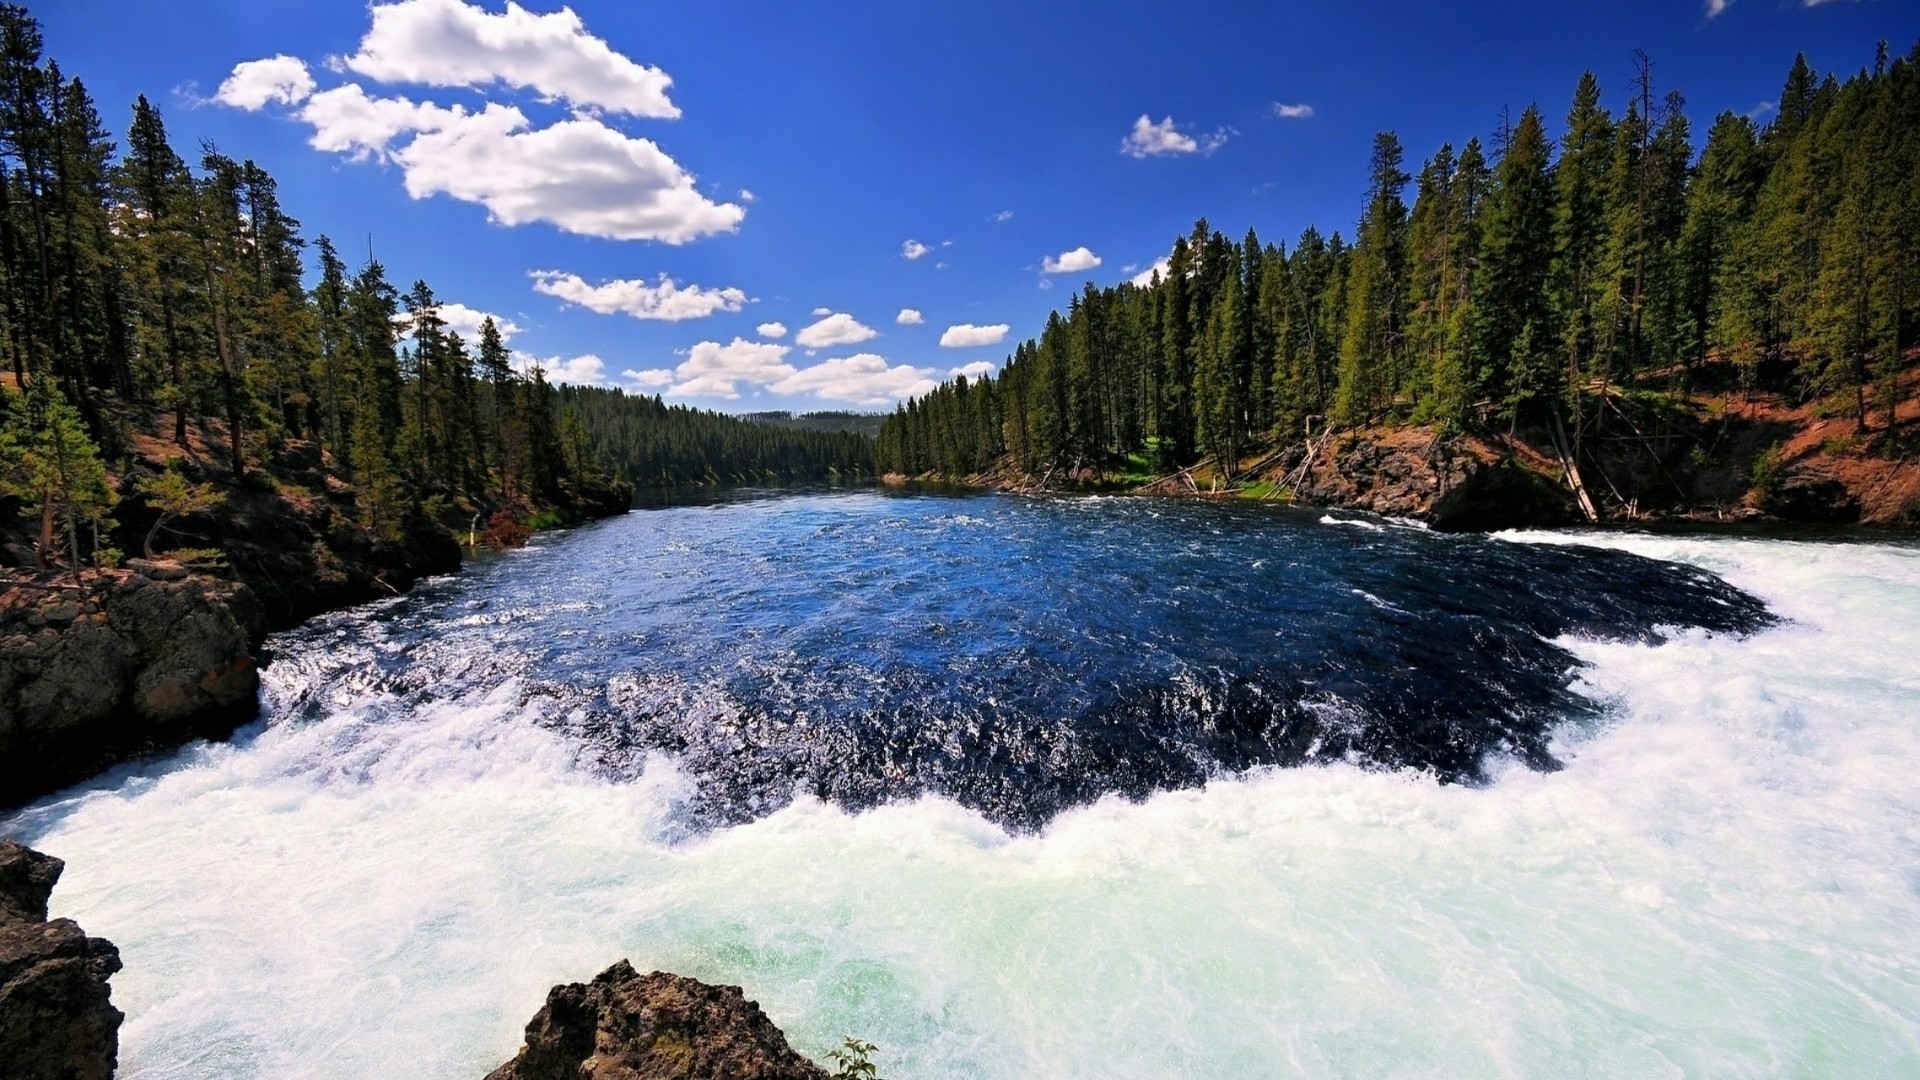 yellowstone national park wallpaper | wallpaper studio 10 | tens of